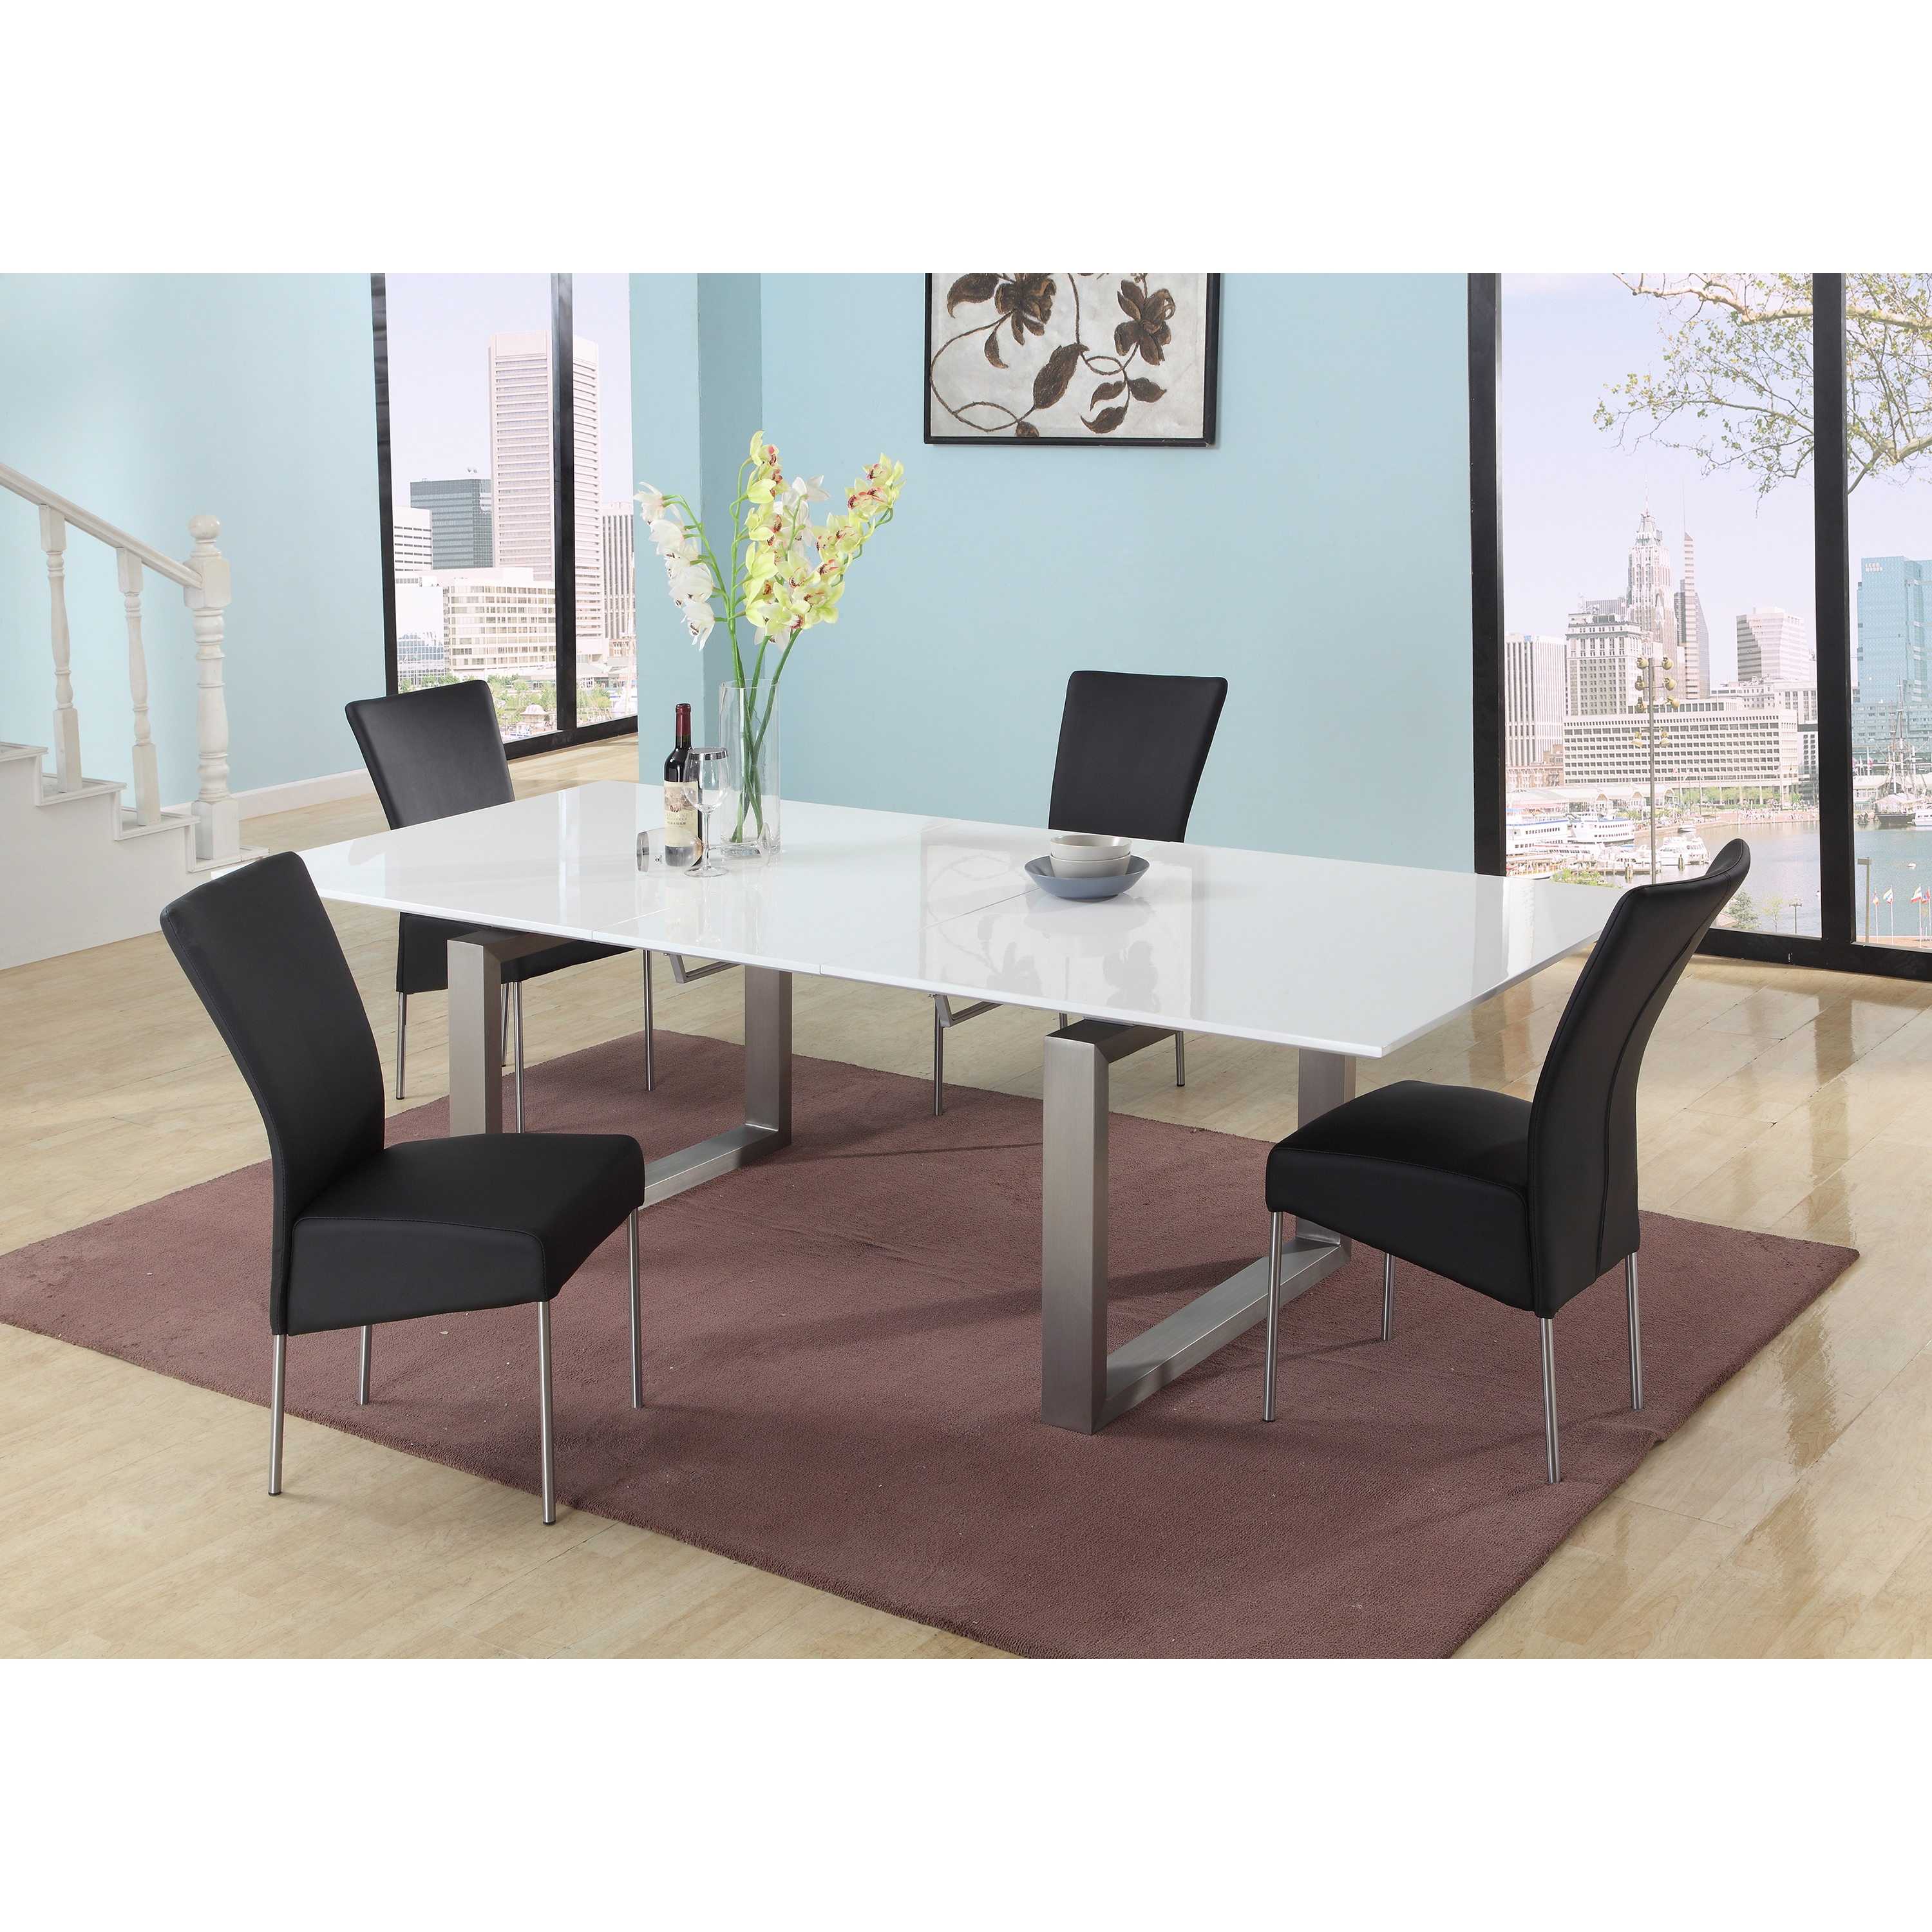 Christopher knight home elisa gloss white extendable dining table christopher knight home elisa gloss white extendable dining table free shipping today overstock 17112610 watchthetrailerfo